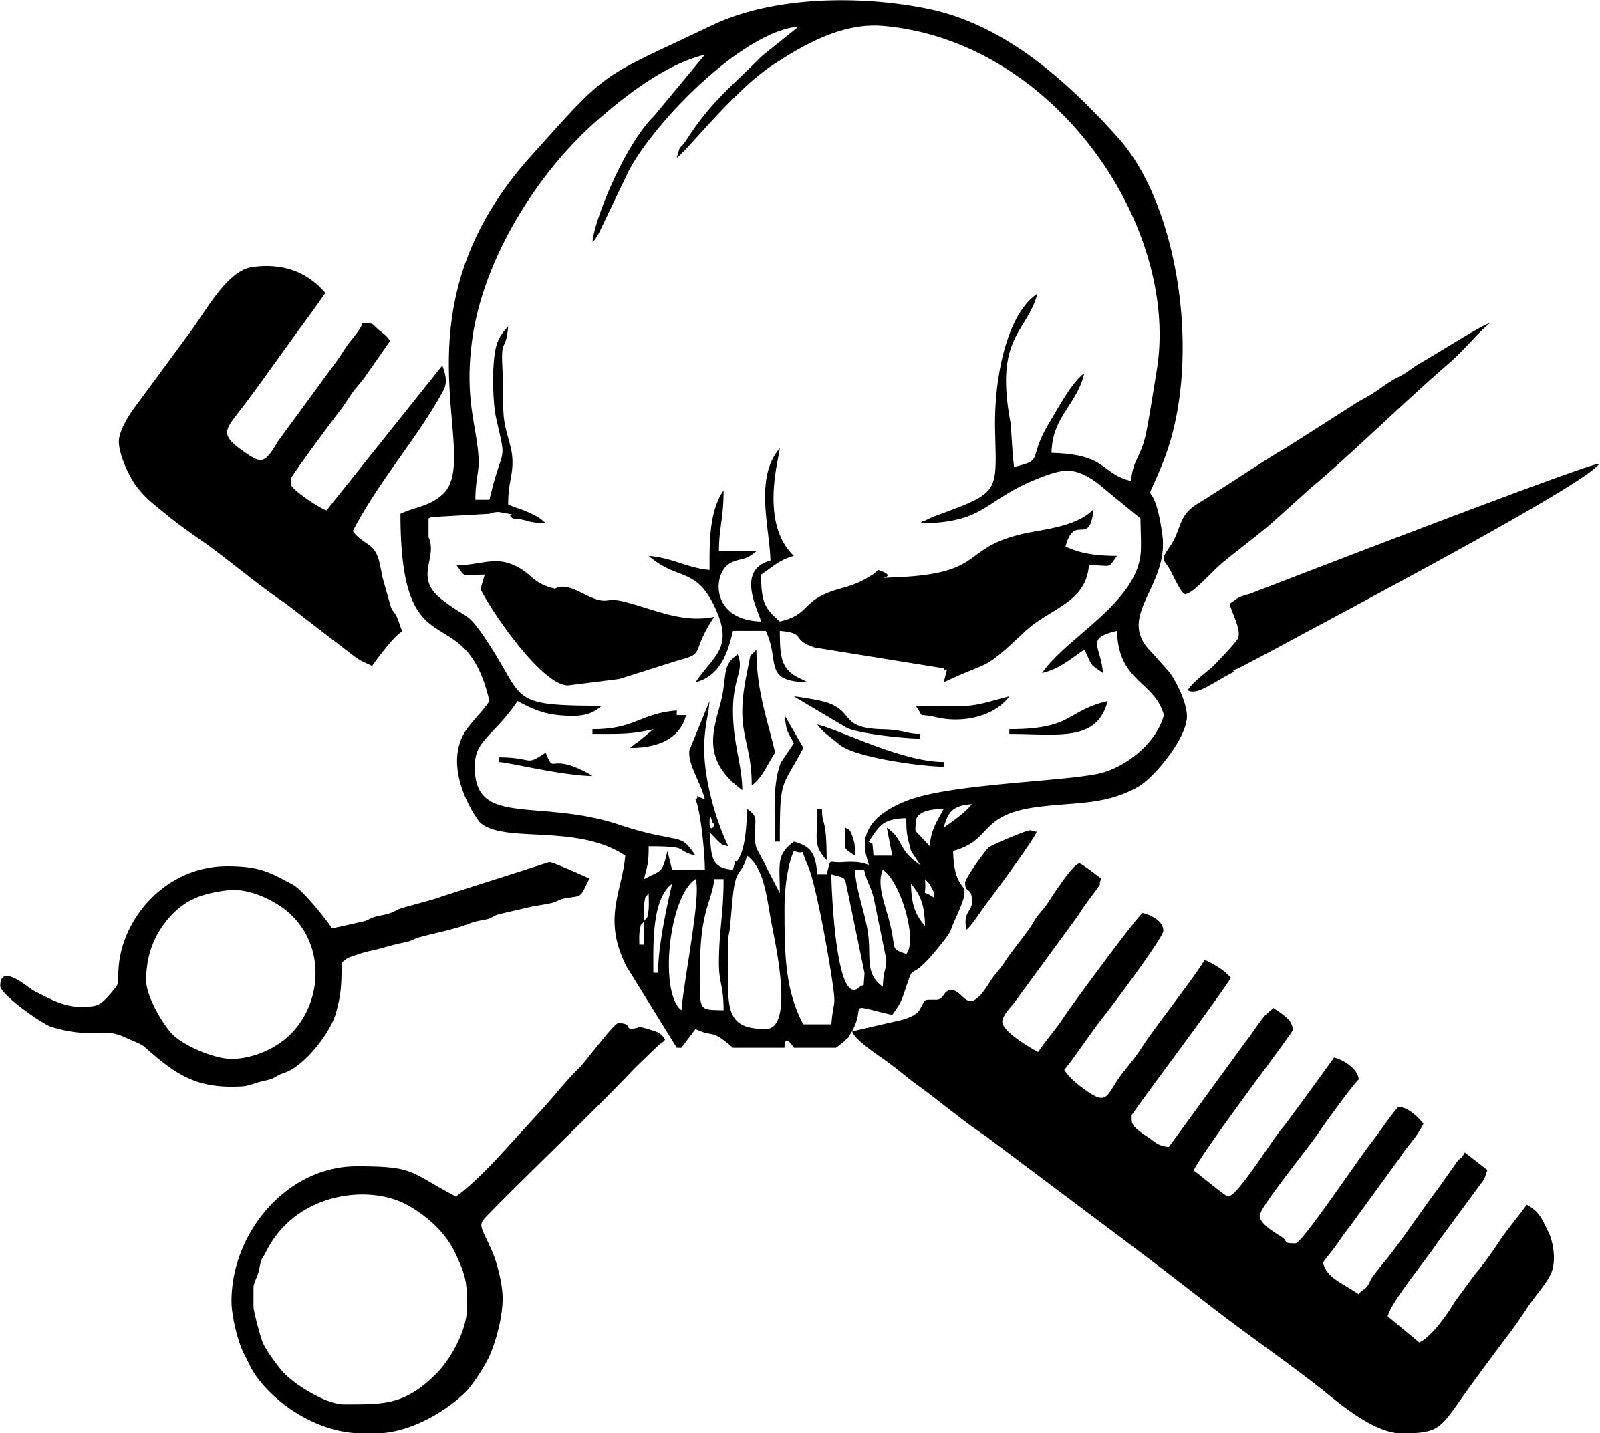 Hair Skull Stylist Beauty Parlor Salon Car Truck Window Wall Vinyl Decal Sticker - 9""